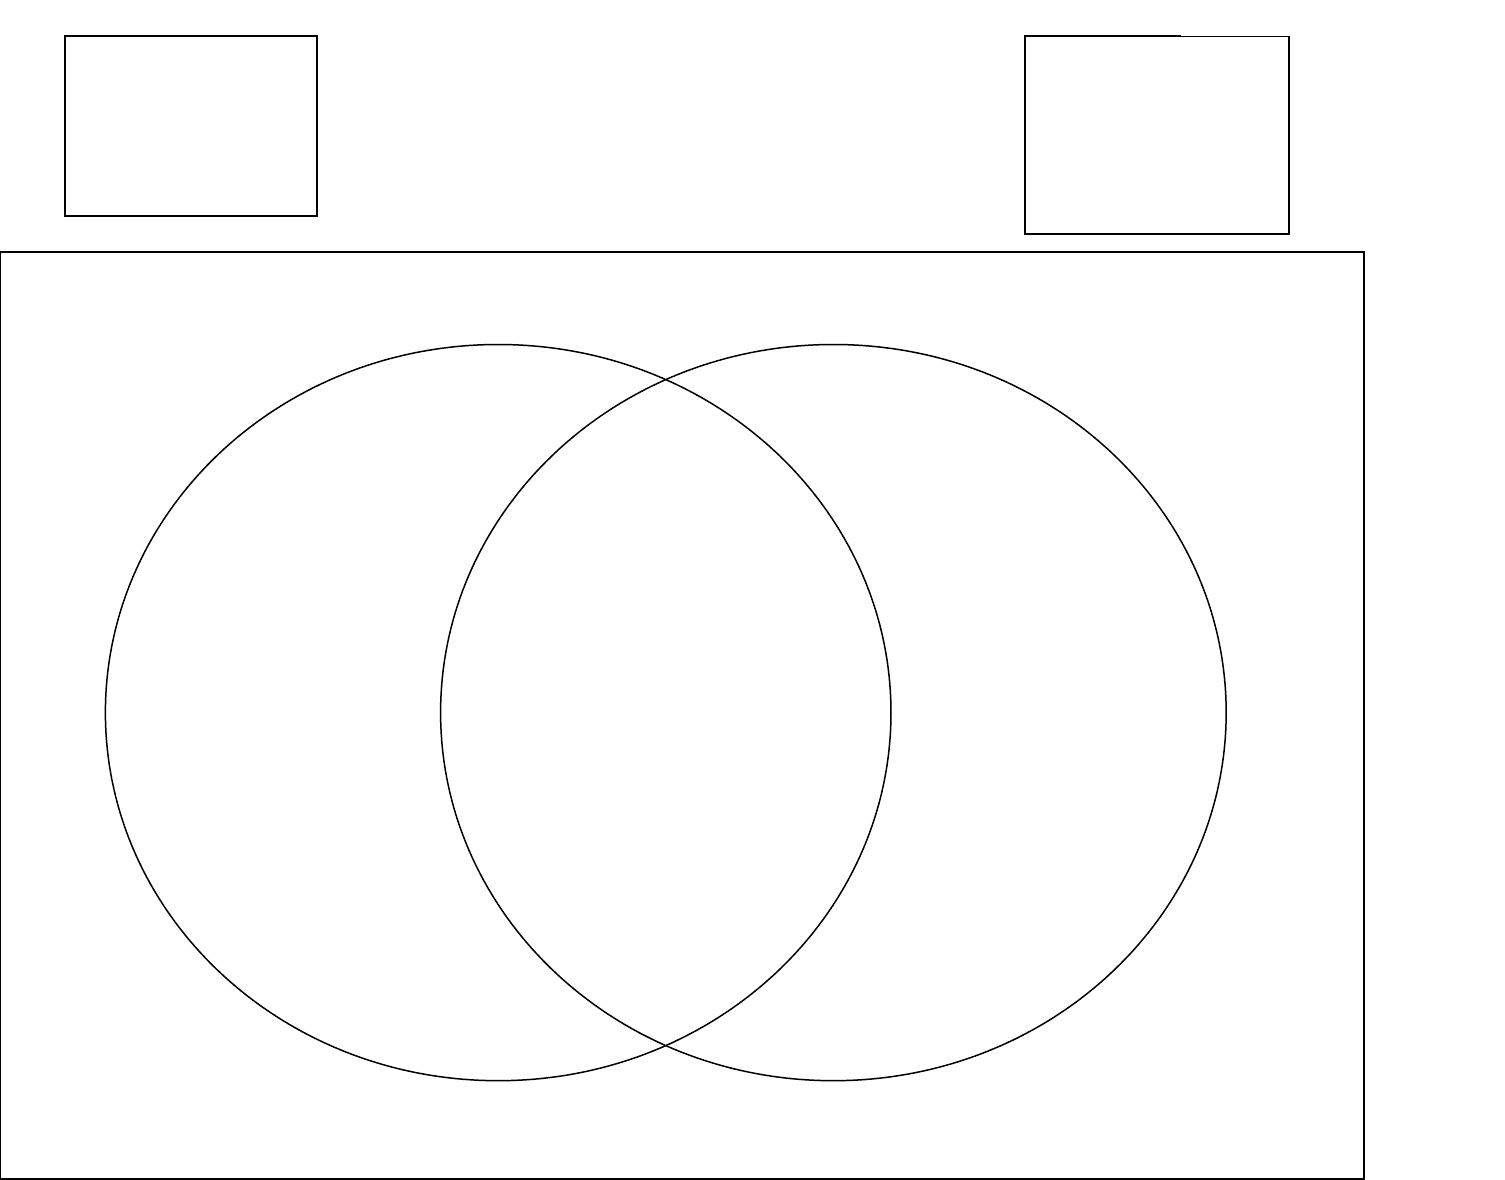 Venn Diagram Template In Word And Formats